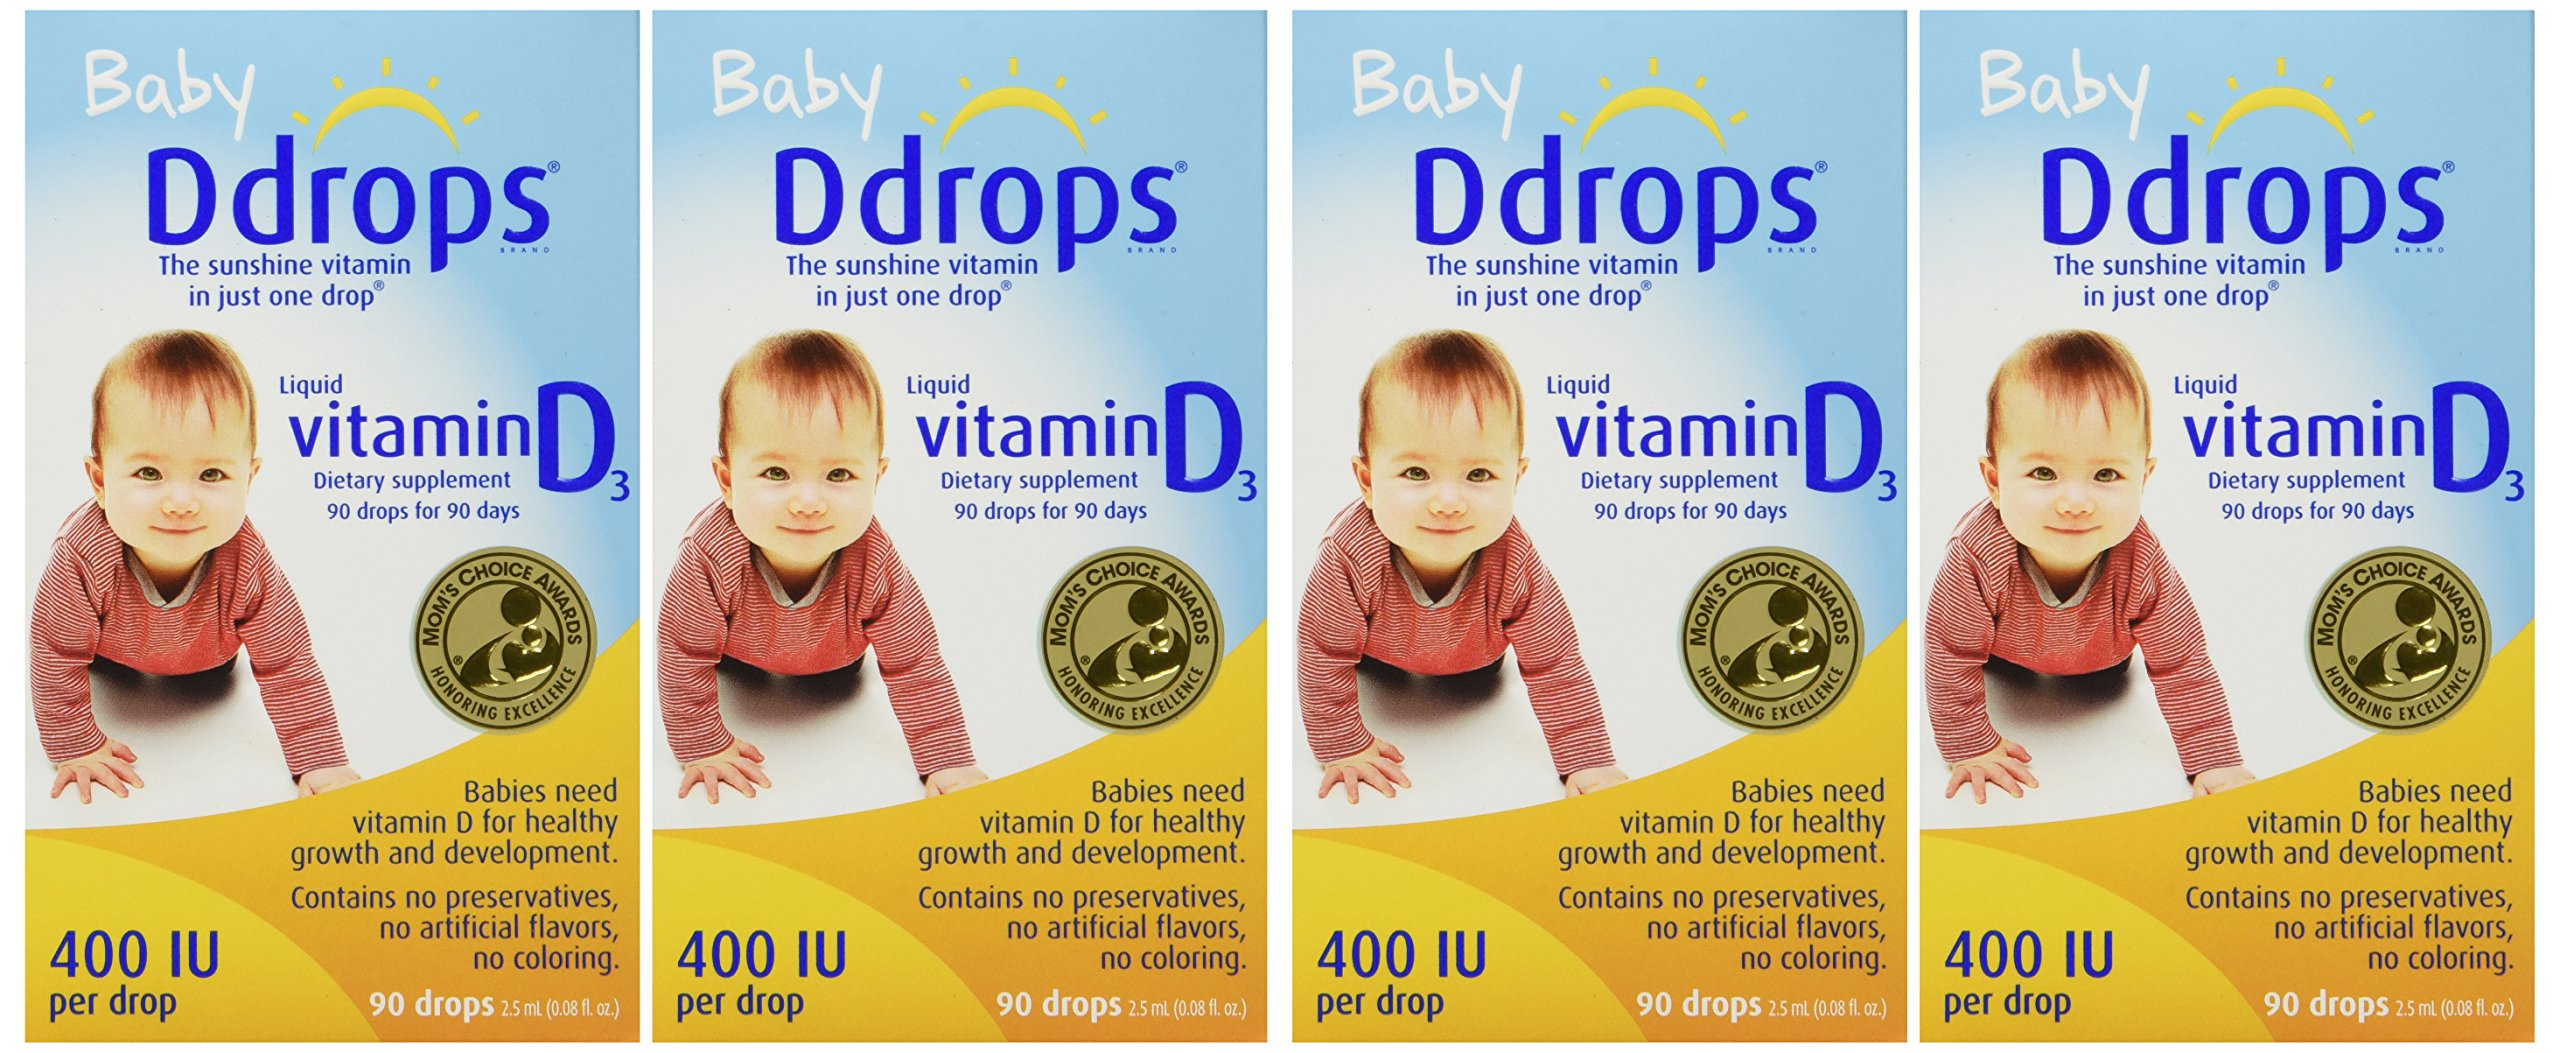 Ddrops Baby 400 Iu 90 Drops 0.08 Fluid Ounce (4 Pack)